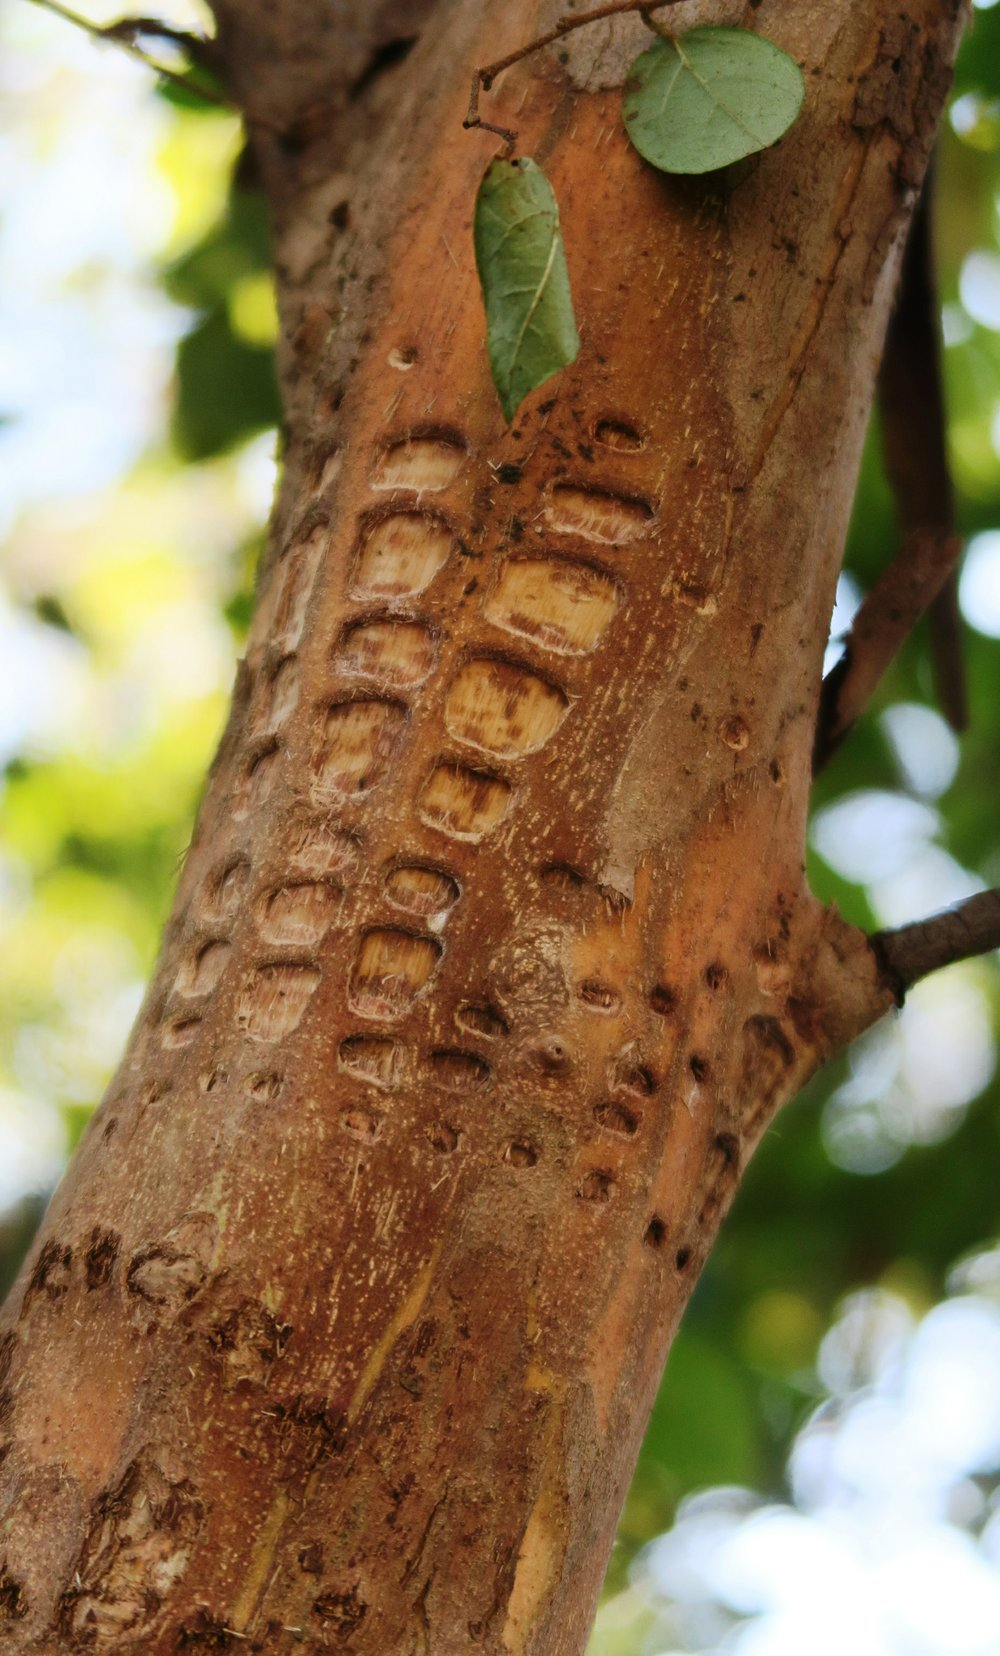 Sapsuckers leave this sort of damage on trunks. (Special to the Democrat-Gazette/Janet B. Carson)